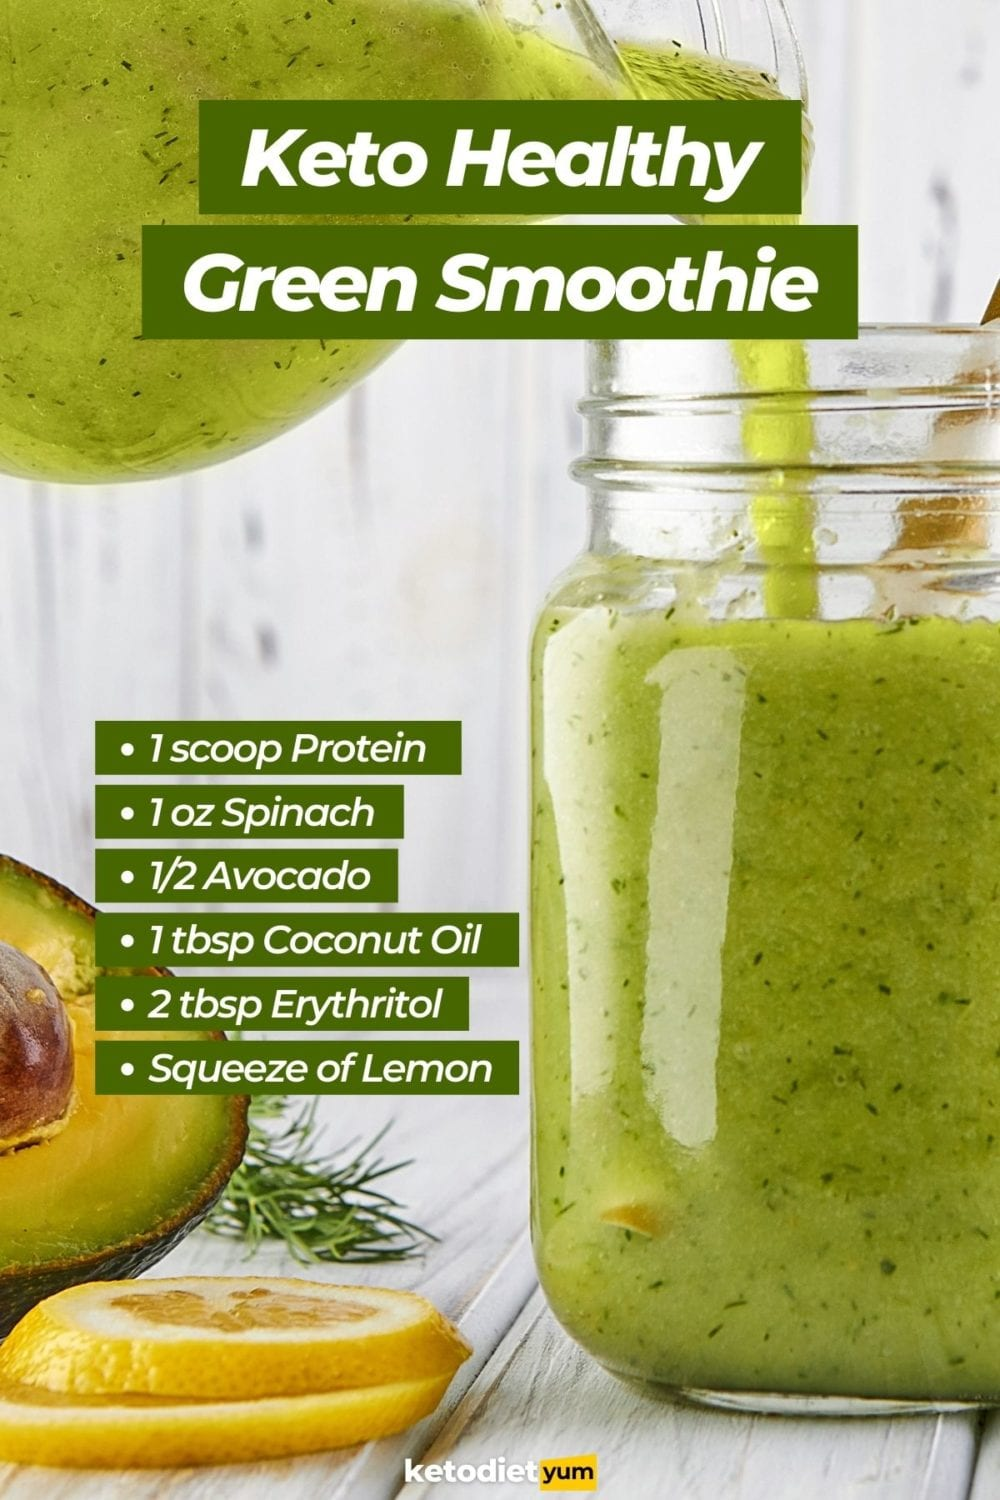 Quick and easy smoothie recipe